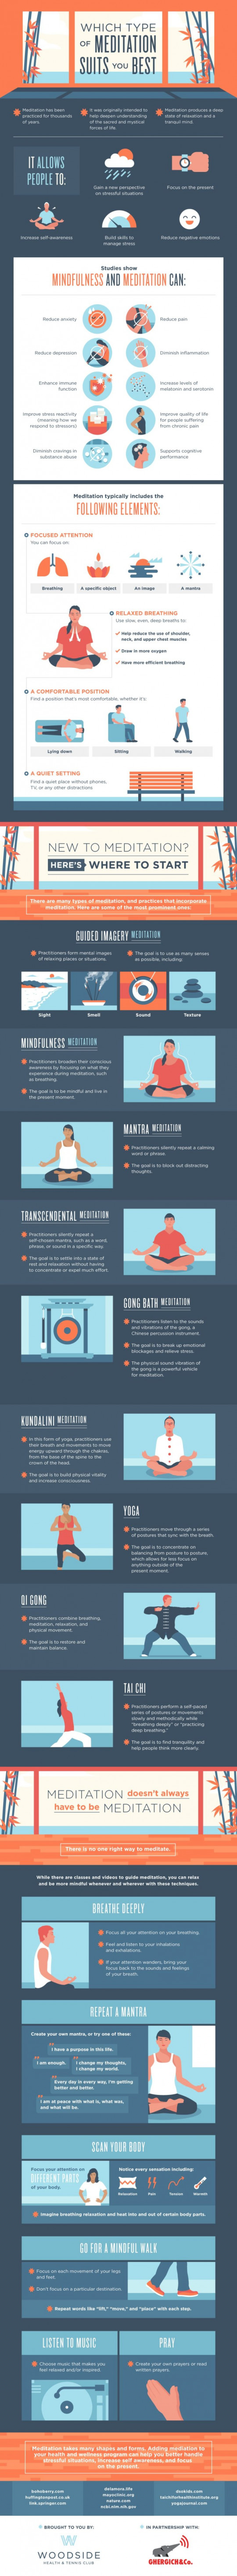 Which Type of Meditation Suits You Best?